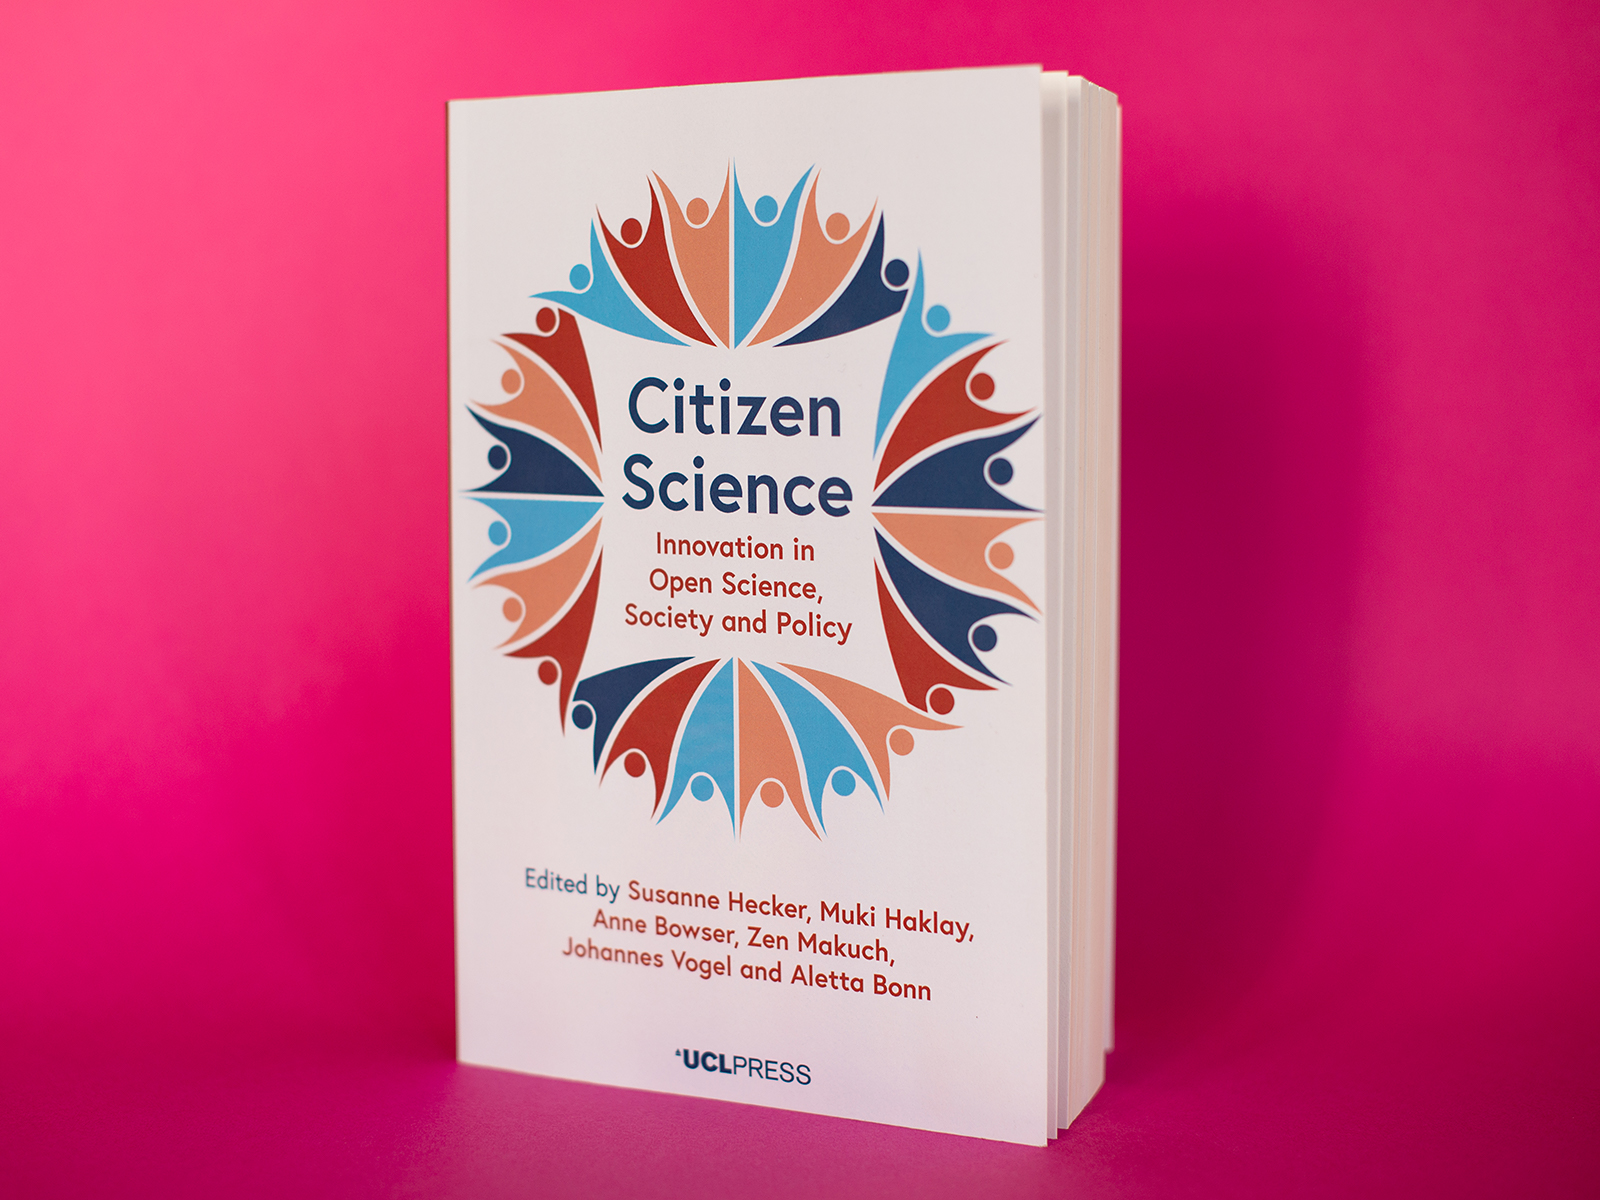 Citizen Science book